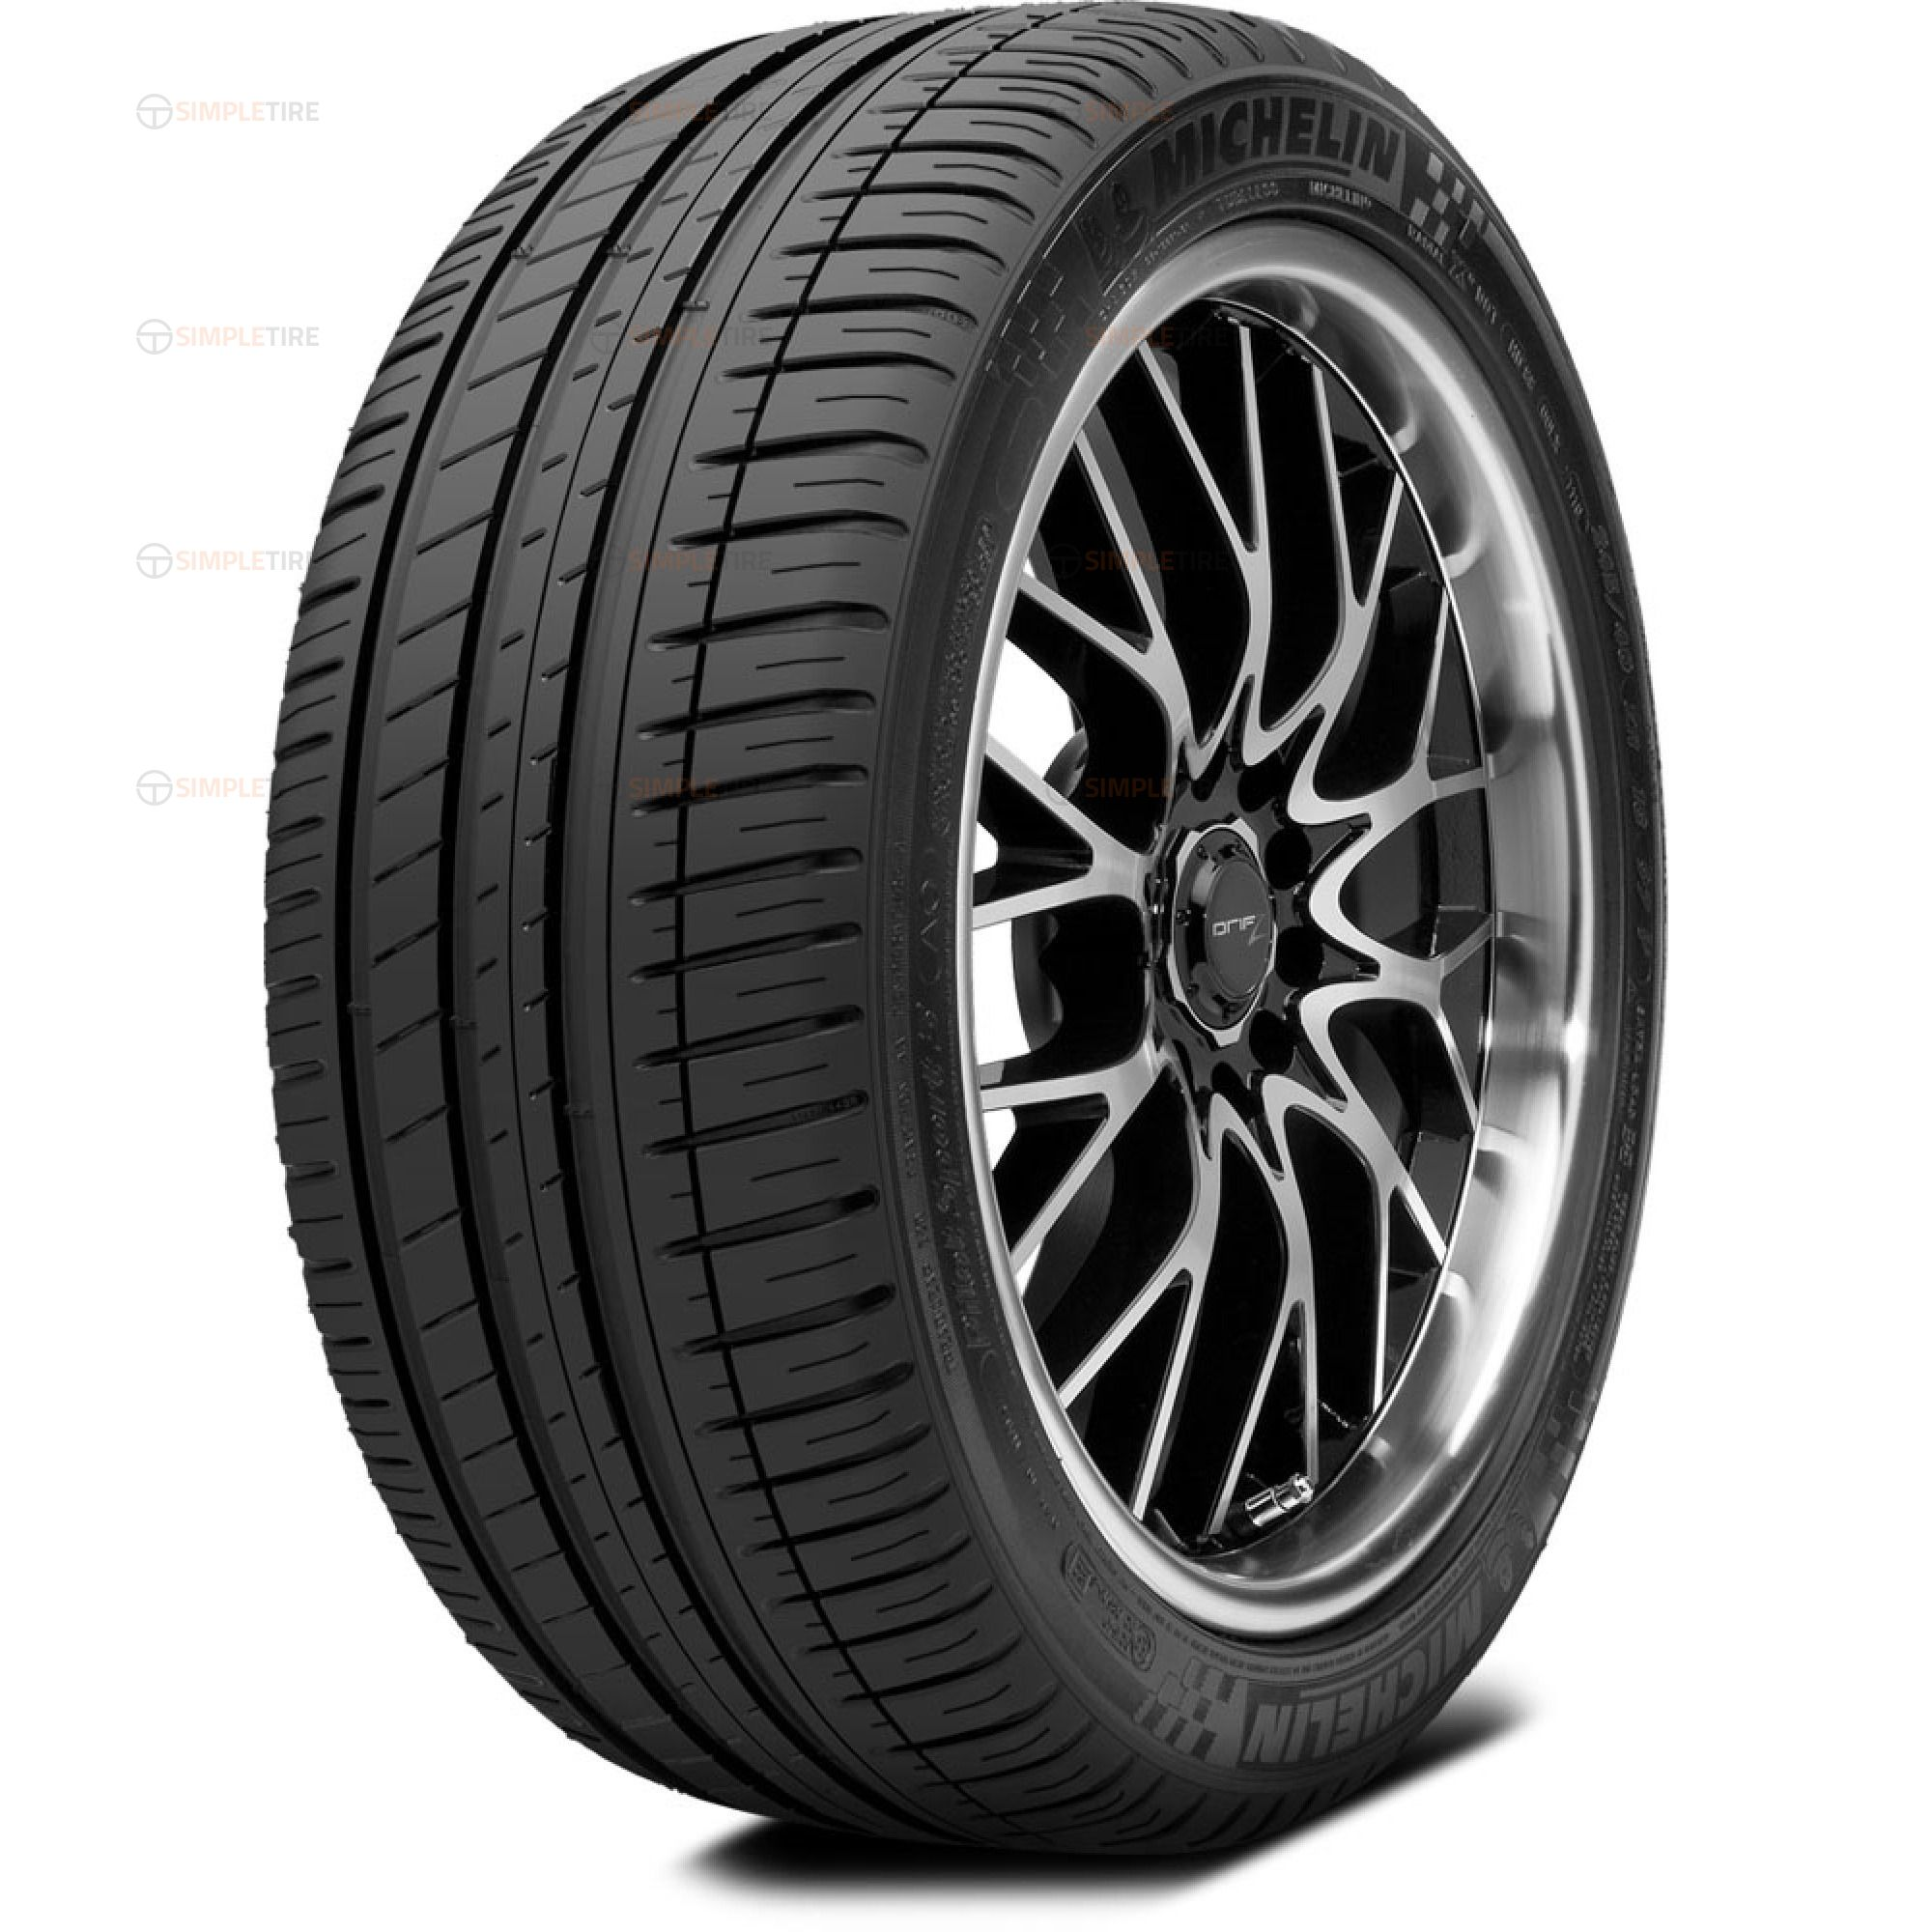 M49471 225/4517 Pilot Sport PS3 Michelin